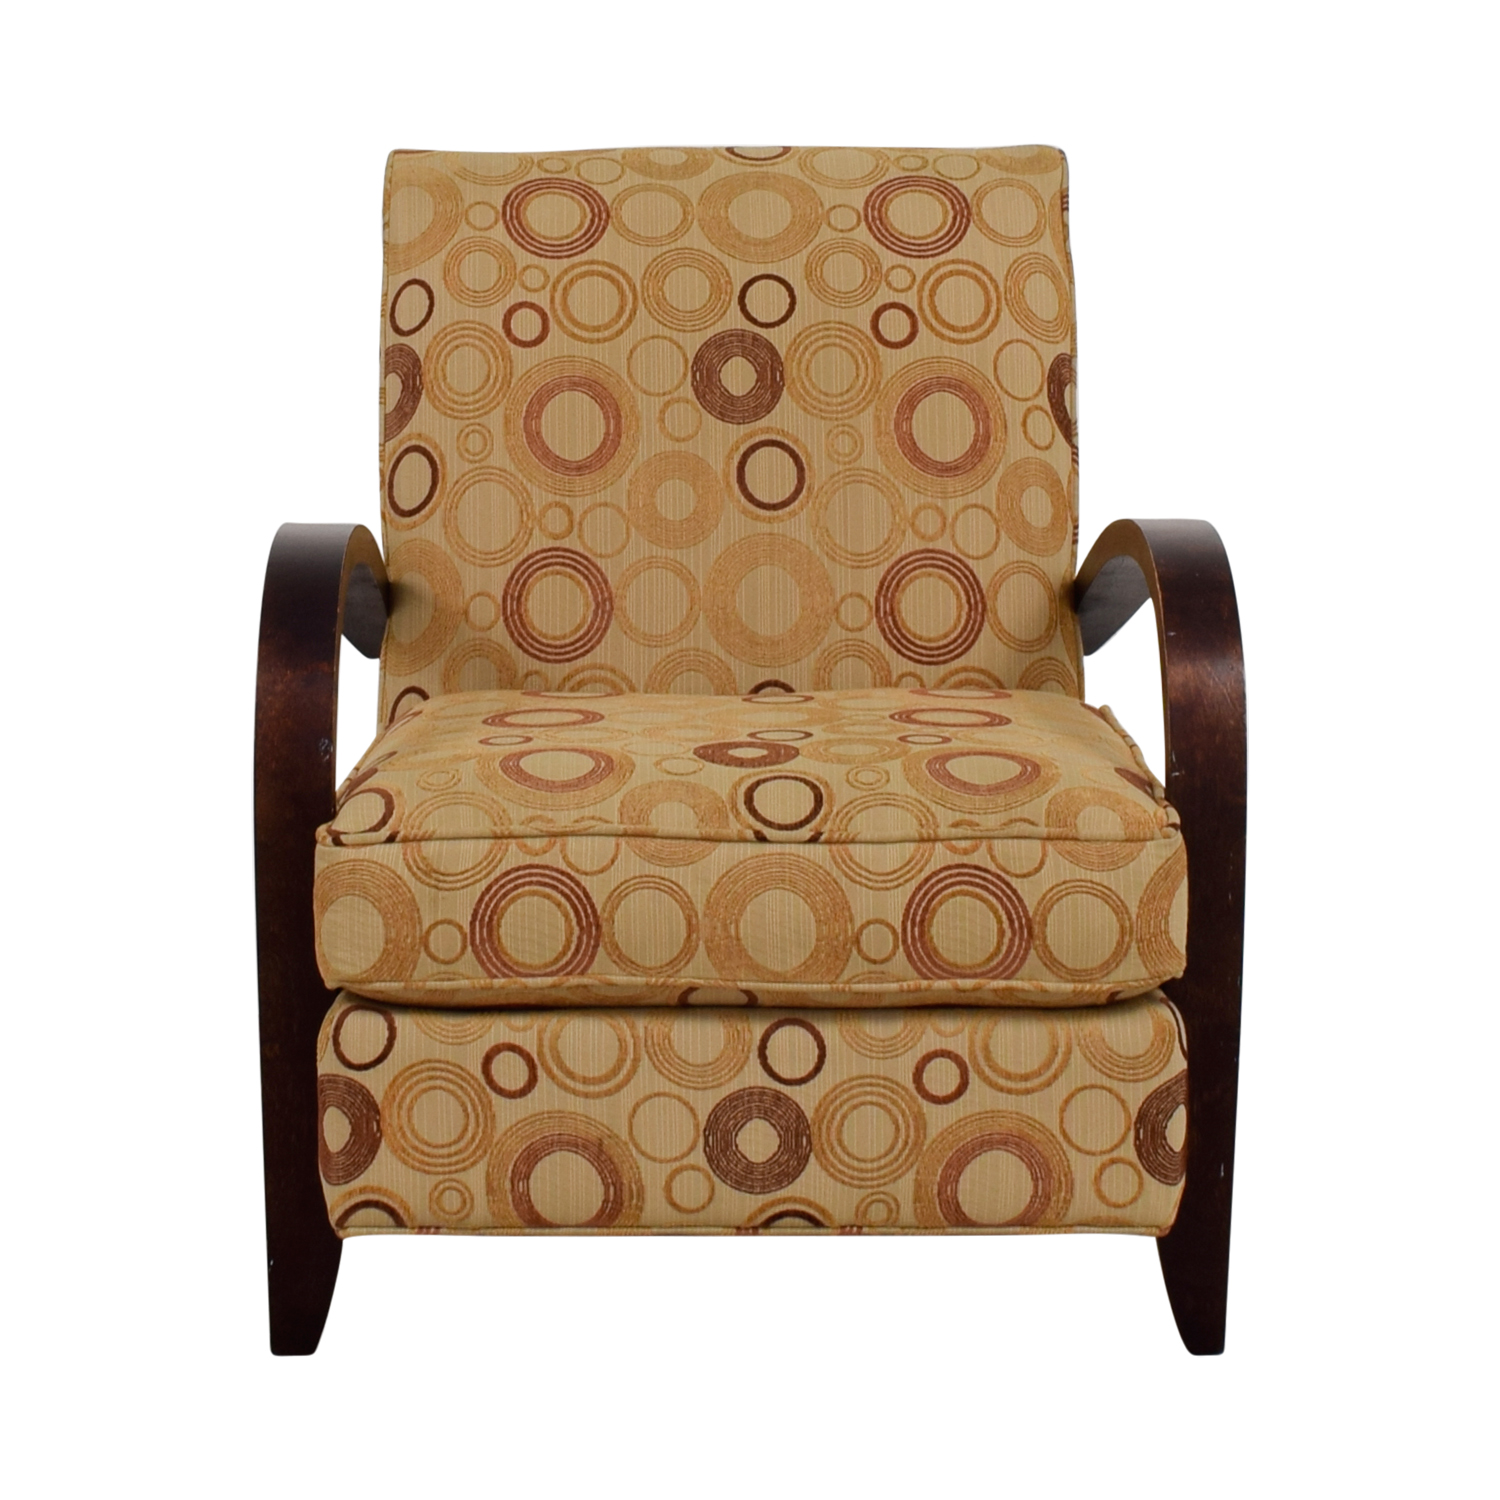 Superbe Pier 1 Imports Pier 1 Imports Circle Accent Chair Coupon ...